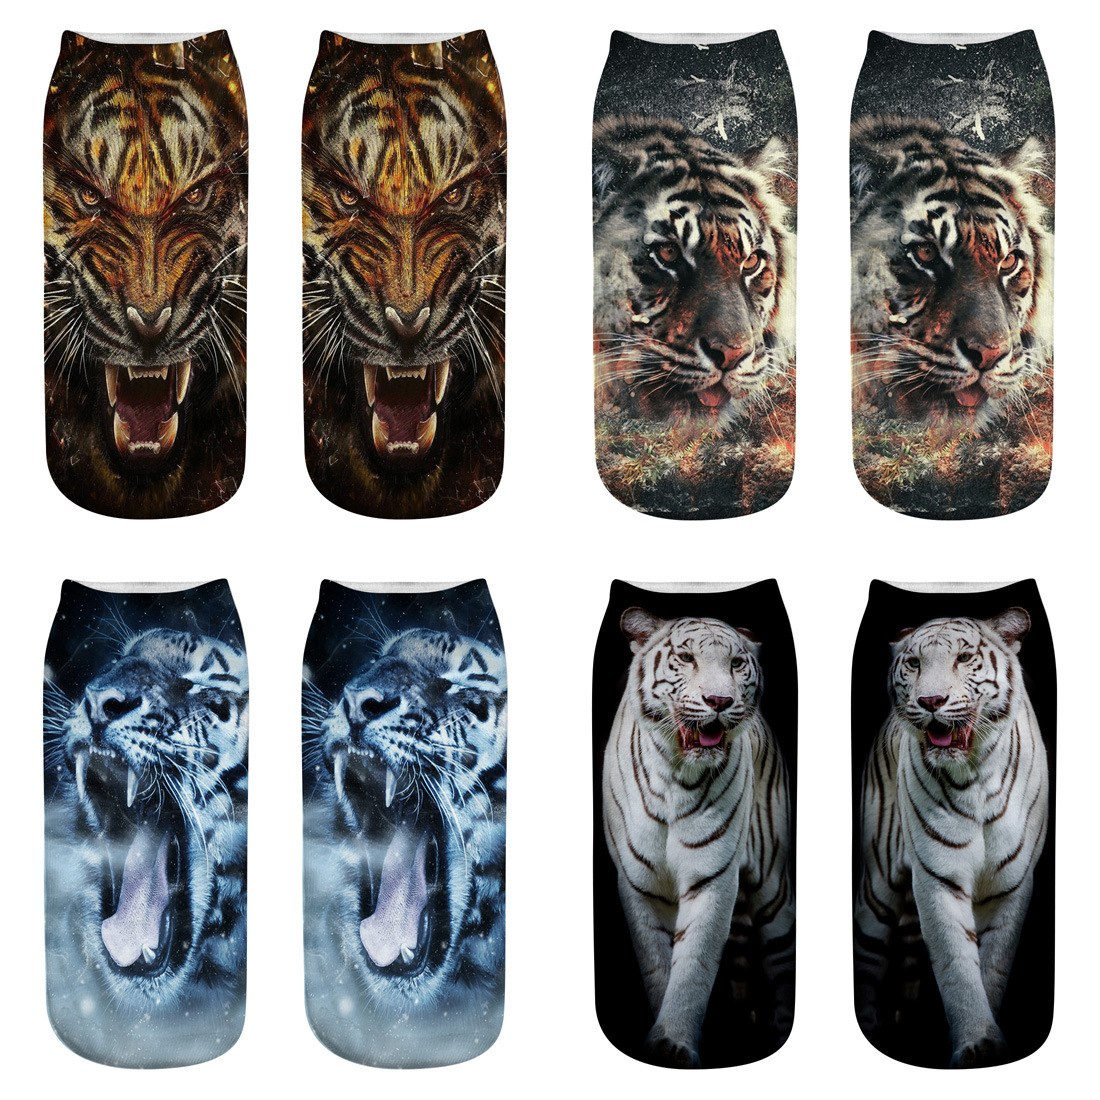 2018 Newest 3D Prints Animal Socks Fashion Tiger Art Picture Women Socks Colorful Cotton Socks Women